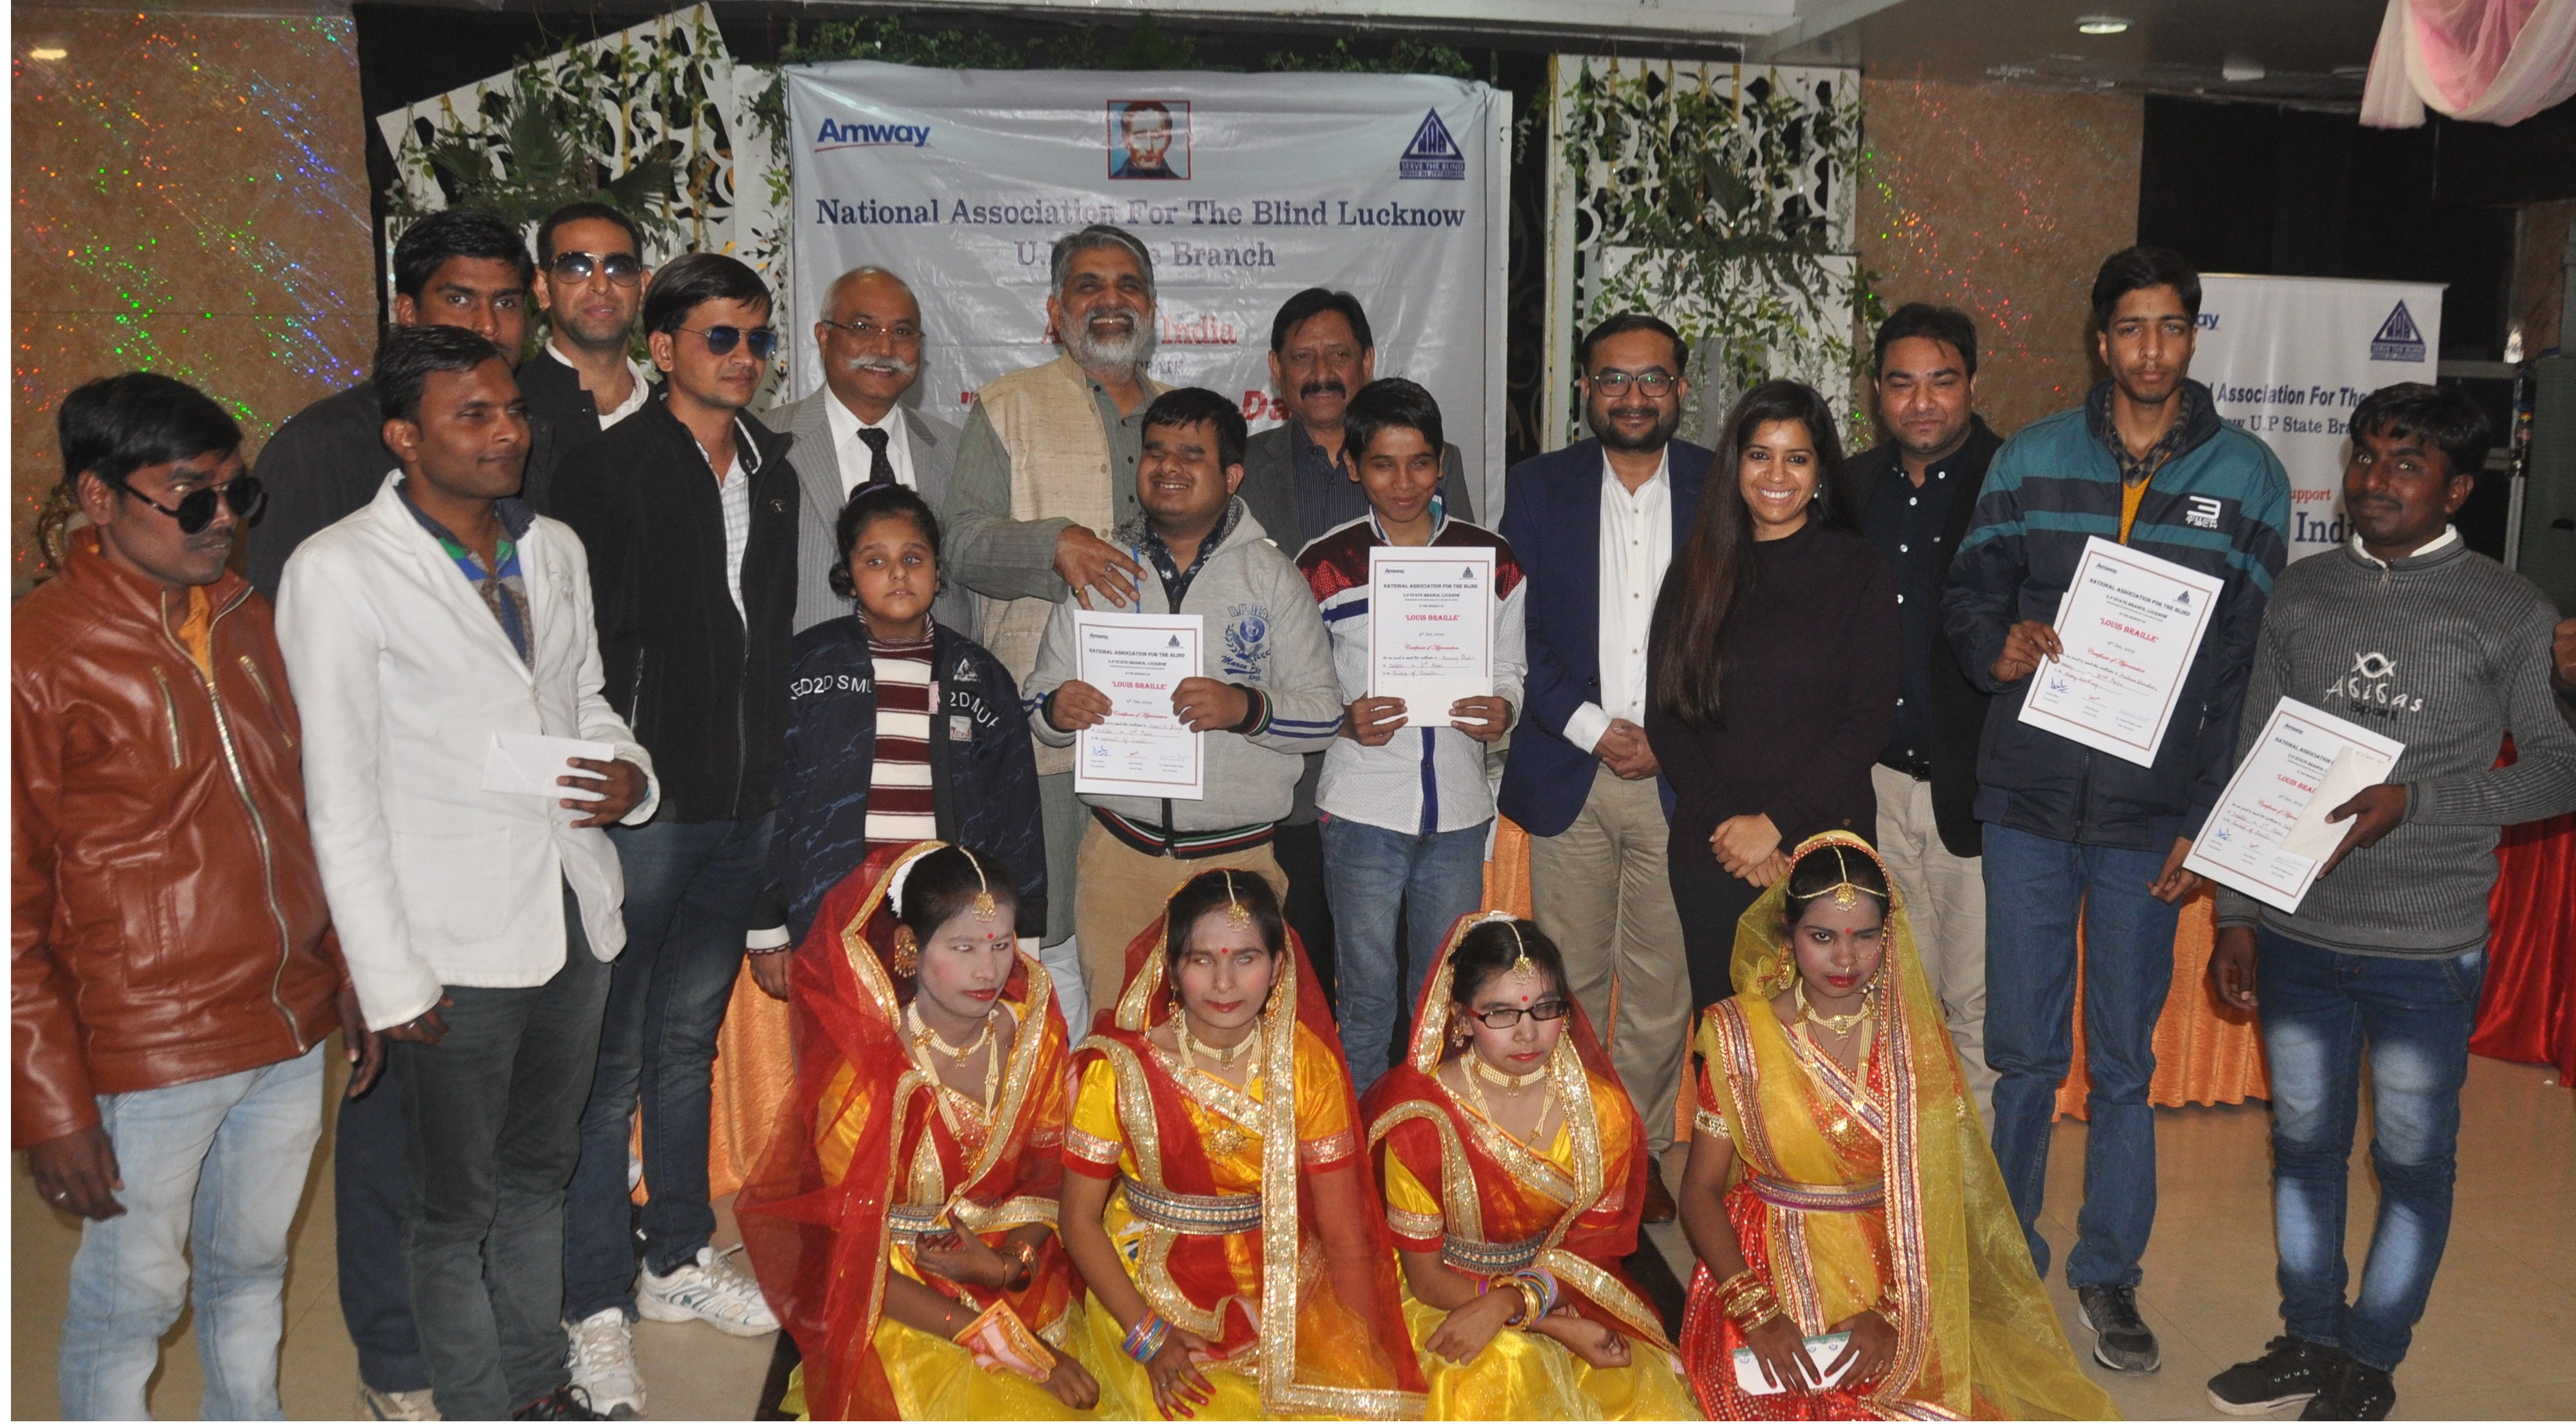 Amway celebrates Louis Braille Day in collaboration with National Association for the Blind, Lucknow | Kaivalya Communication